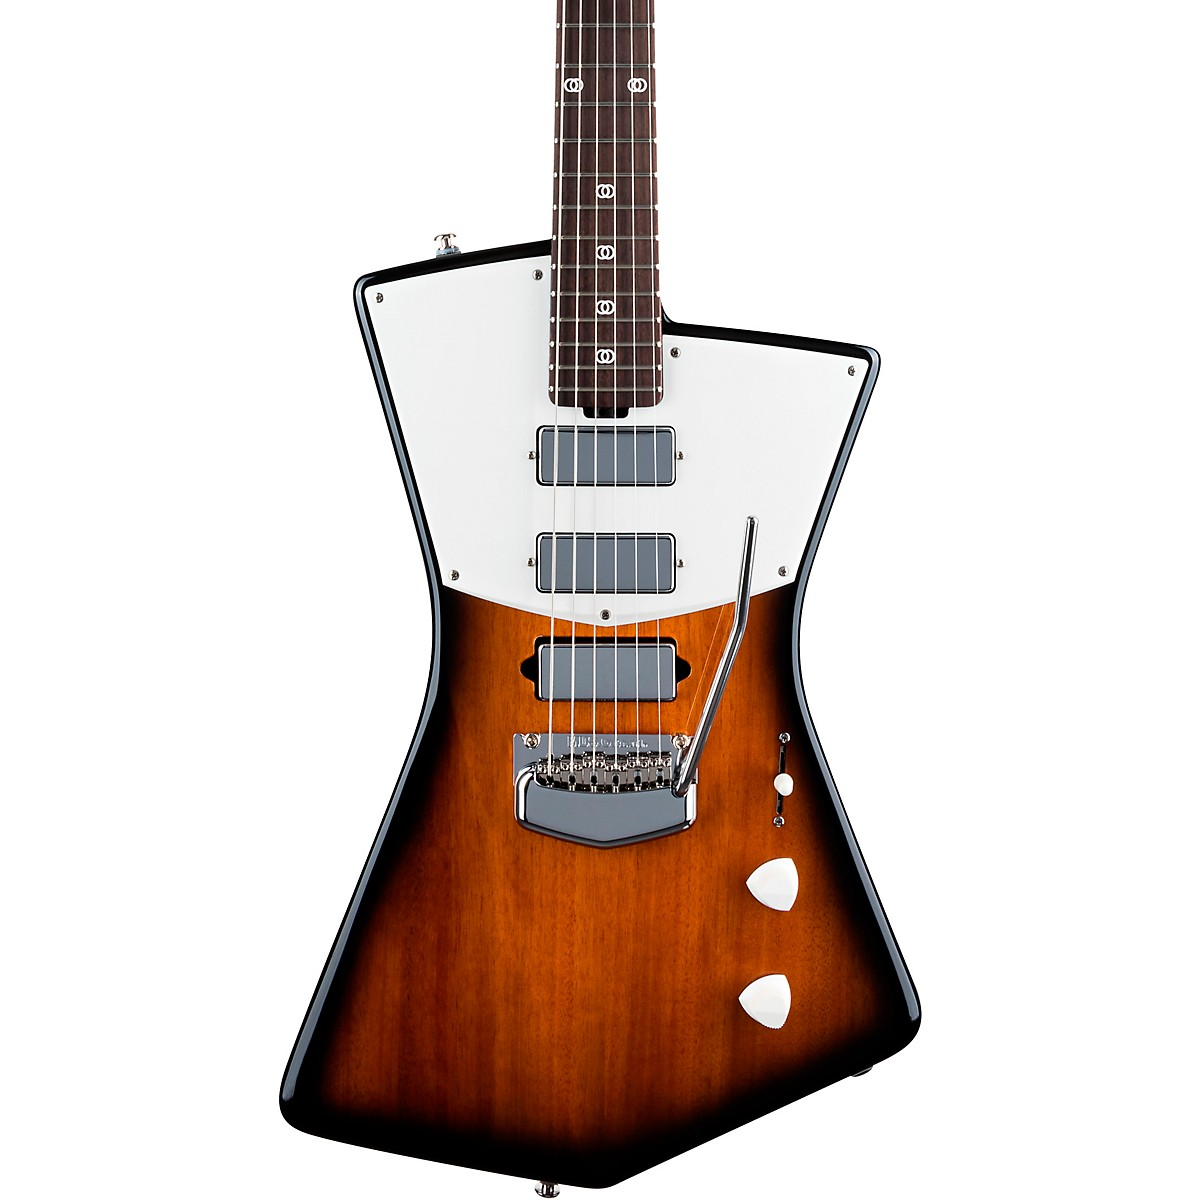 Ernie Ball Music Man St. Vincent Roasted Maple Neck Rosewood Fingerboard Electric Guitar